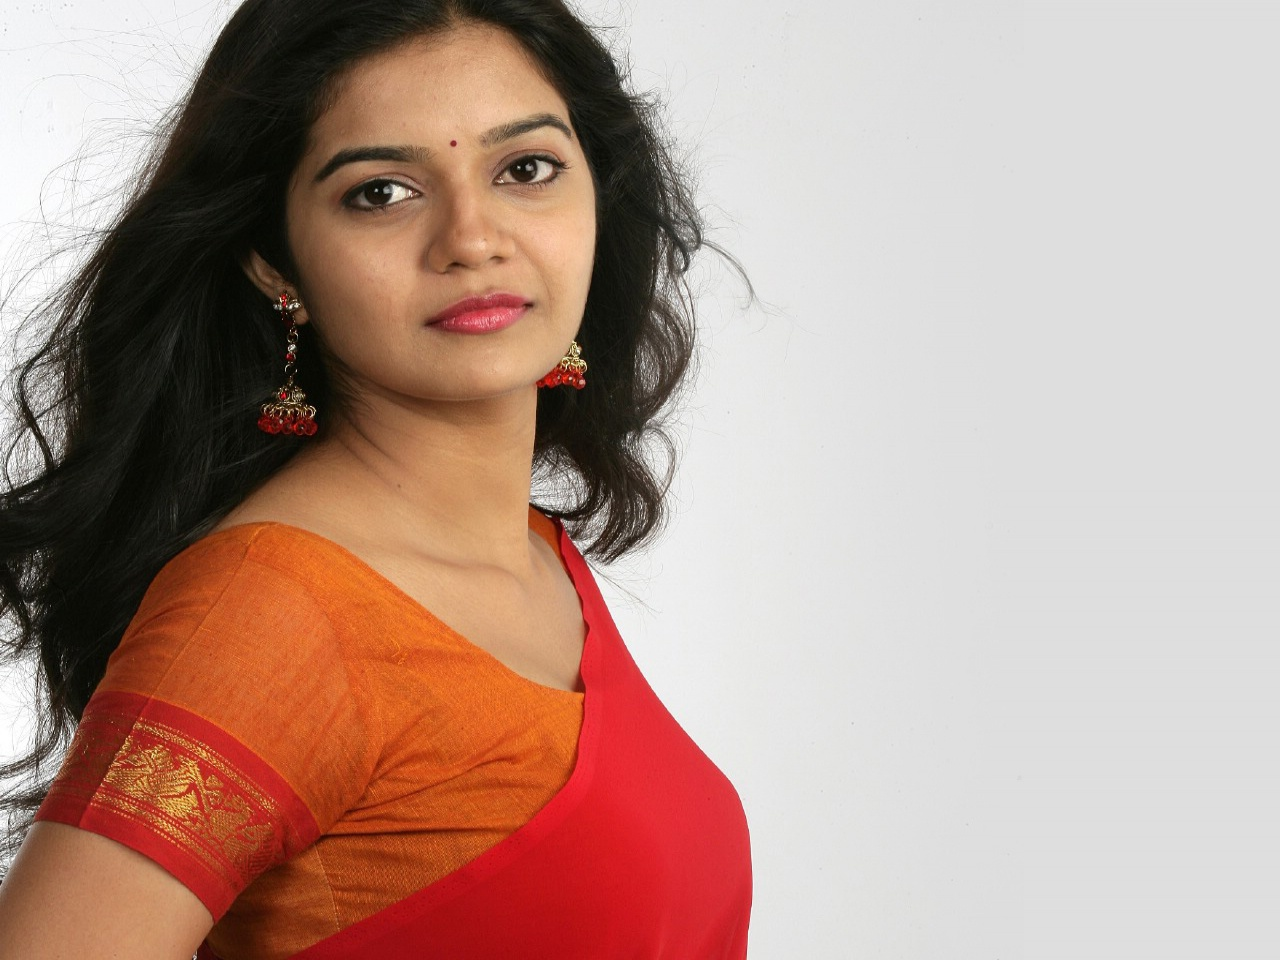 swathi actress pictures